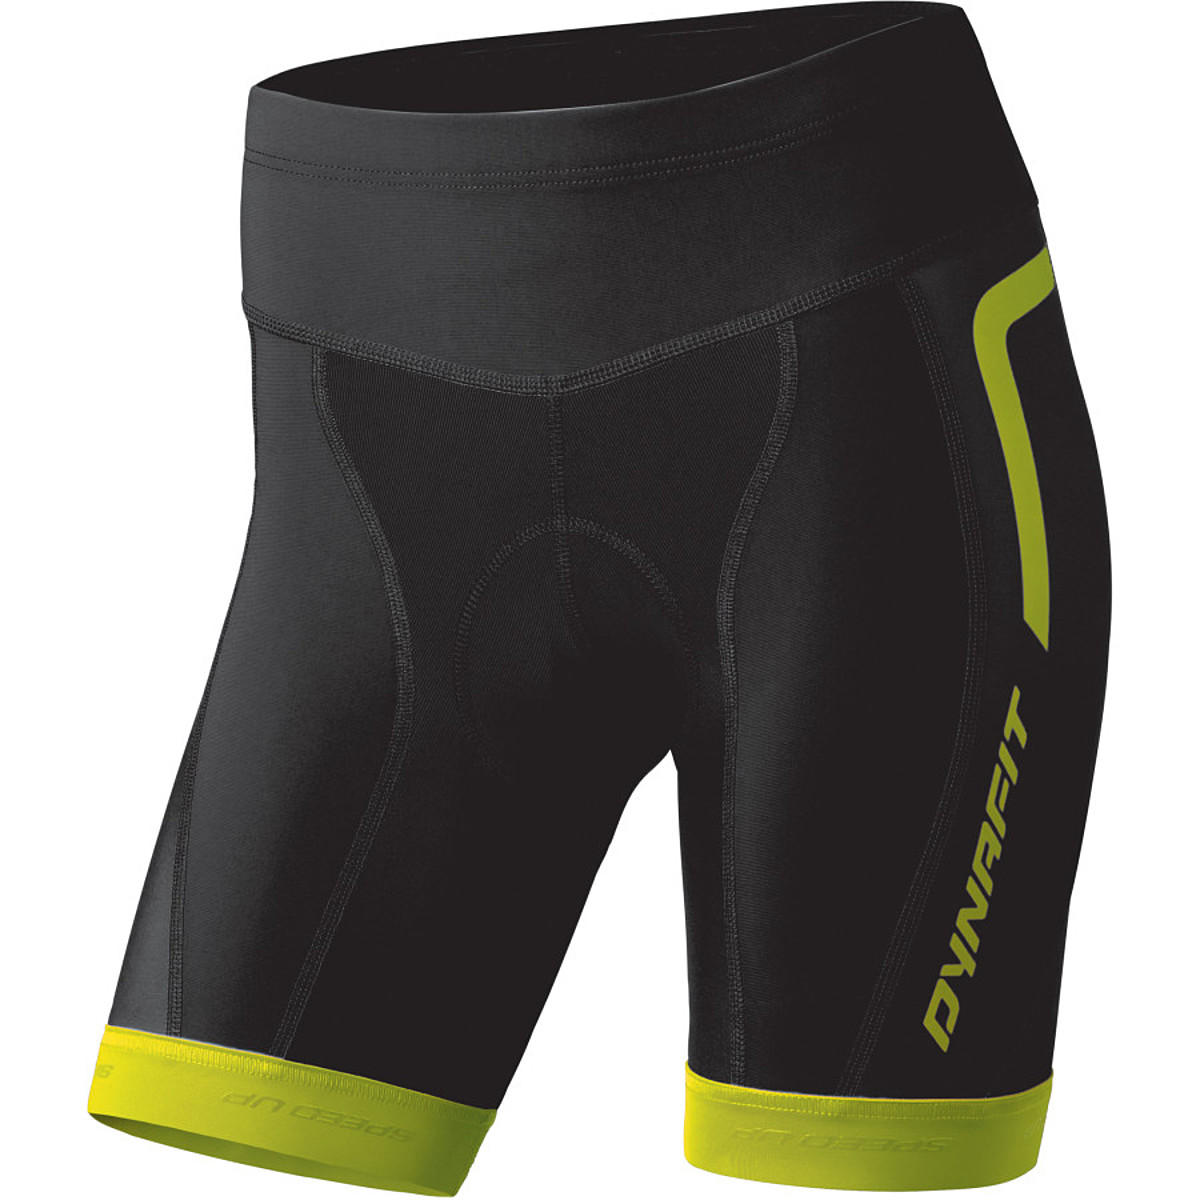 Dynafit Gravel DST Short Tights